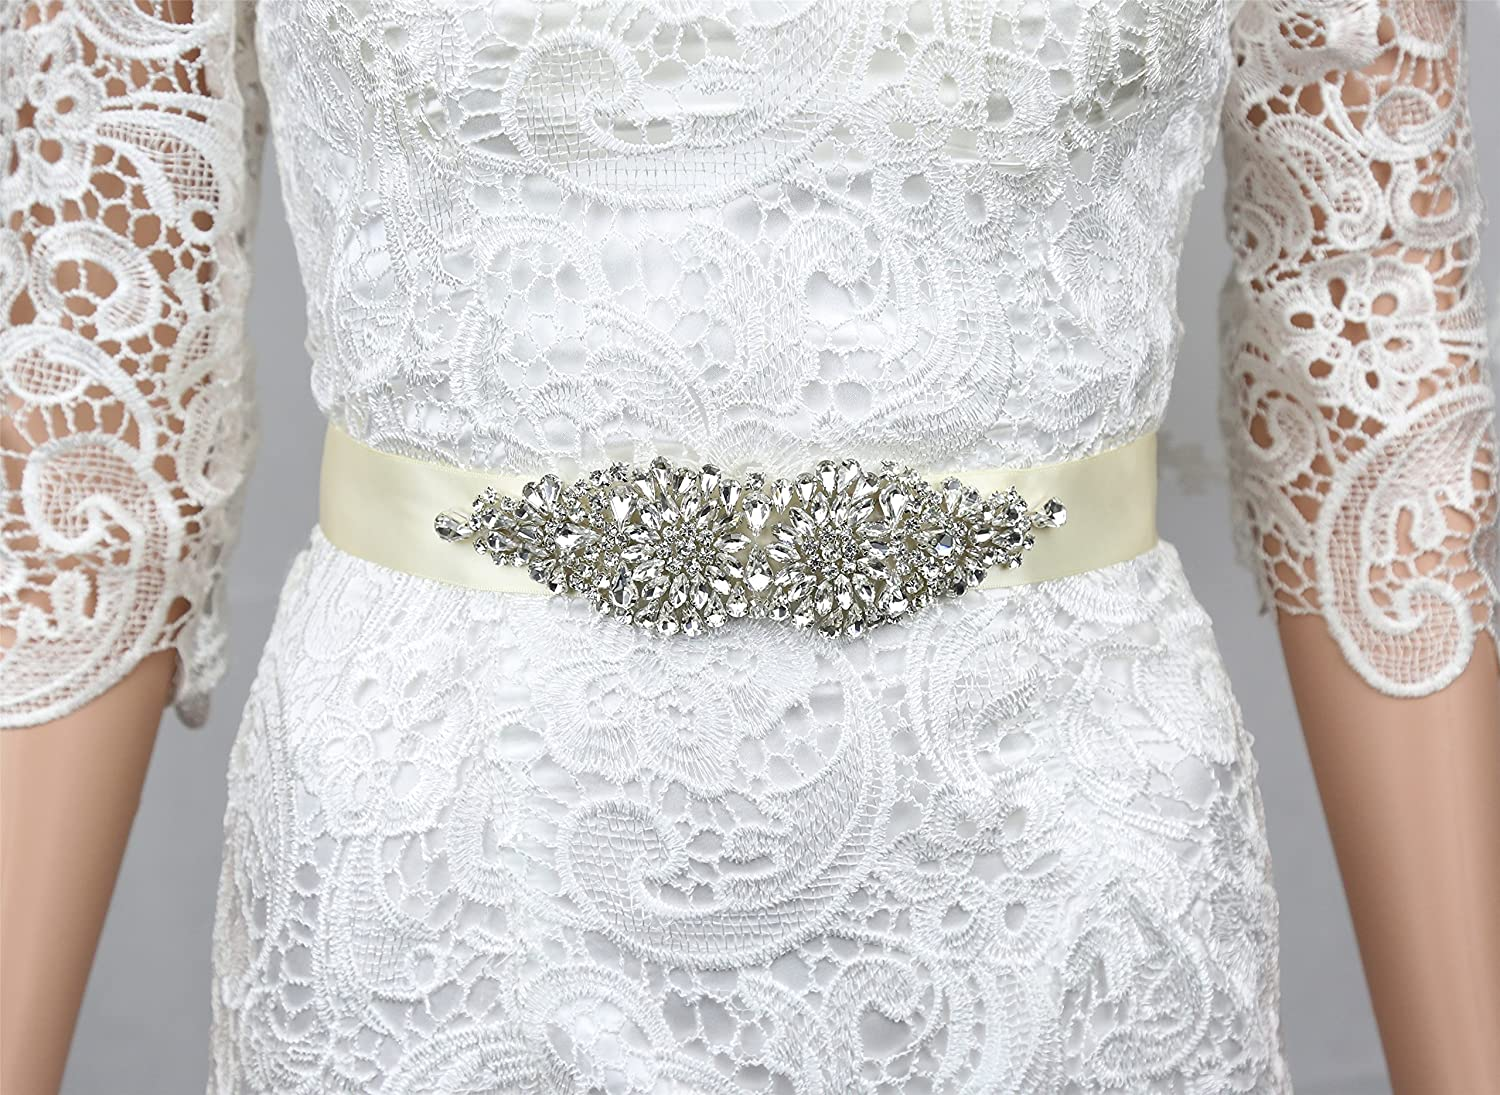 SoarDream Bridal Dress Sash, Rhinestone Bridal Belts, Wedding Belt, 7.2x2inches.